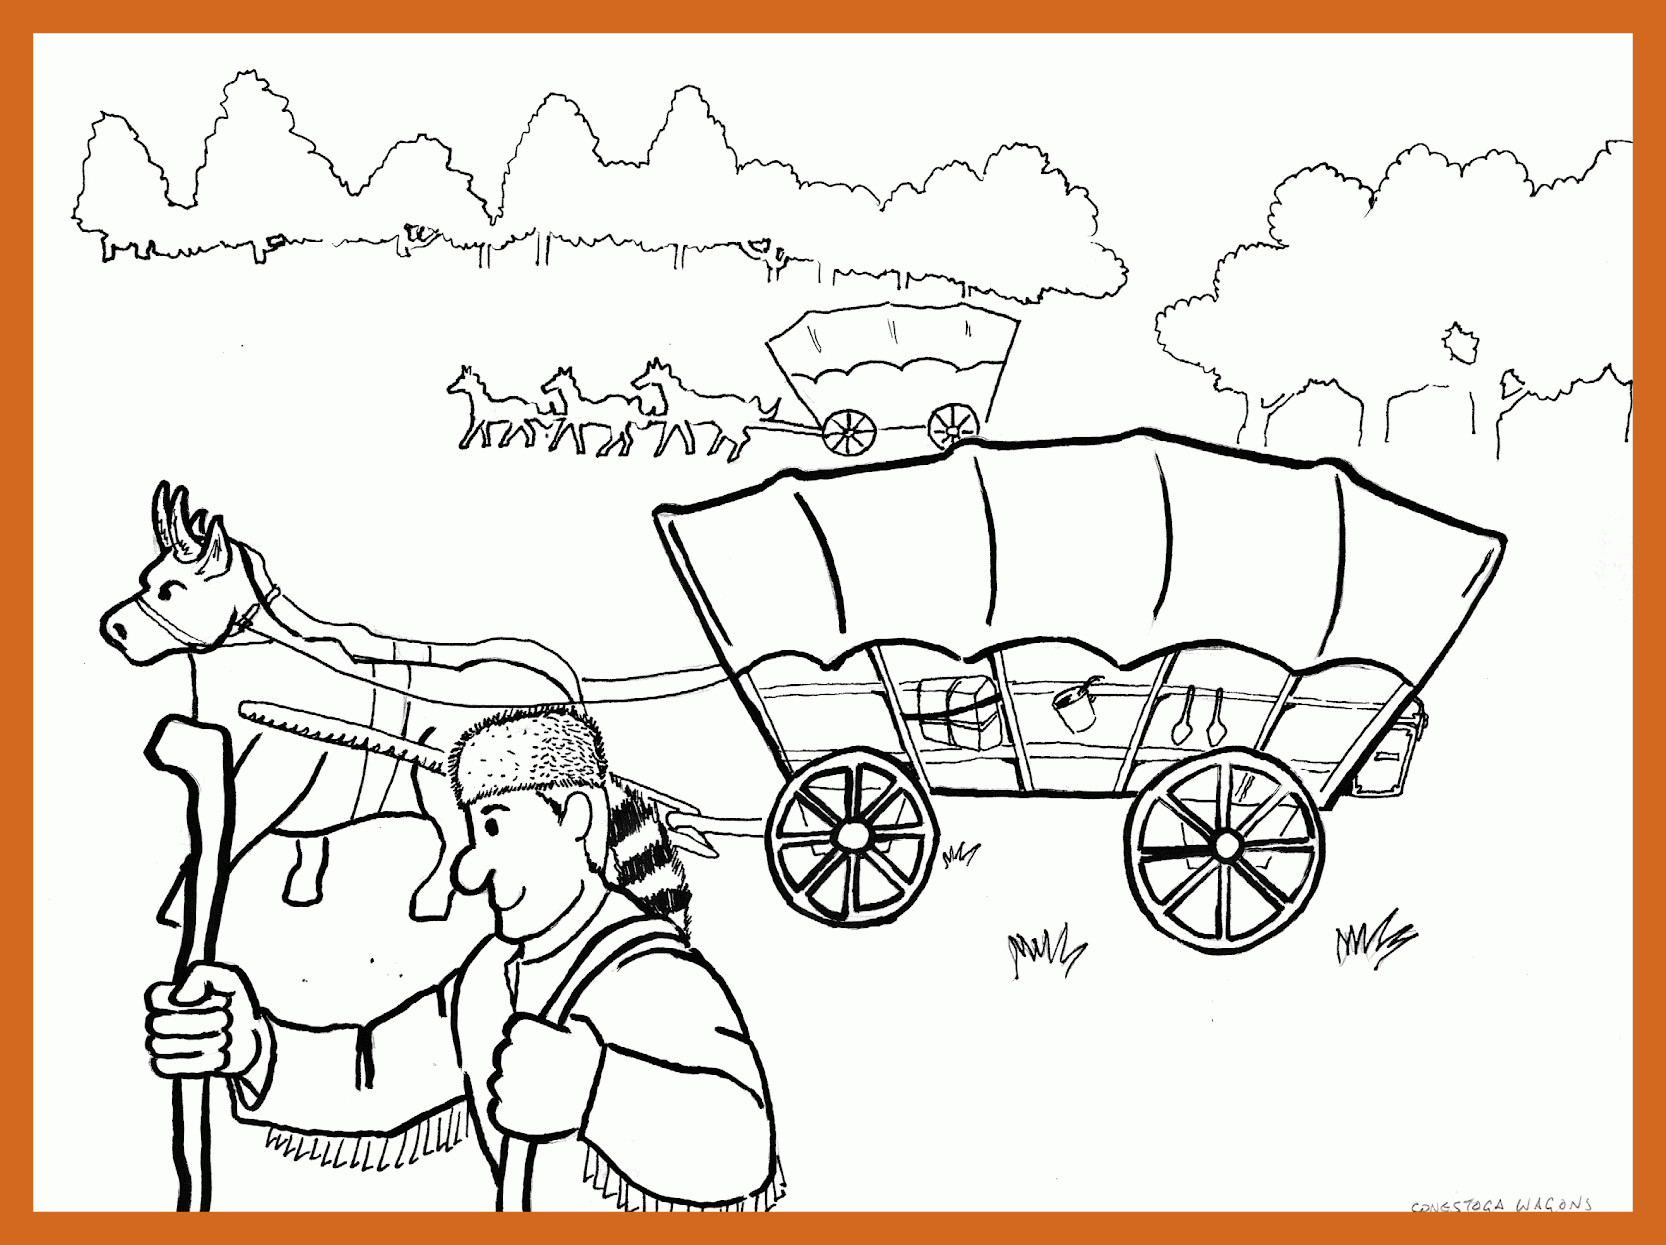 1666x1245 Covered Wagon Coloring Page Newyork Rp Com Brilliant Tixac